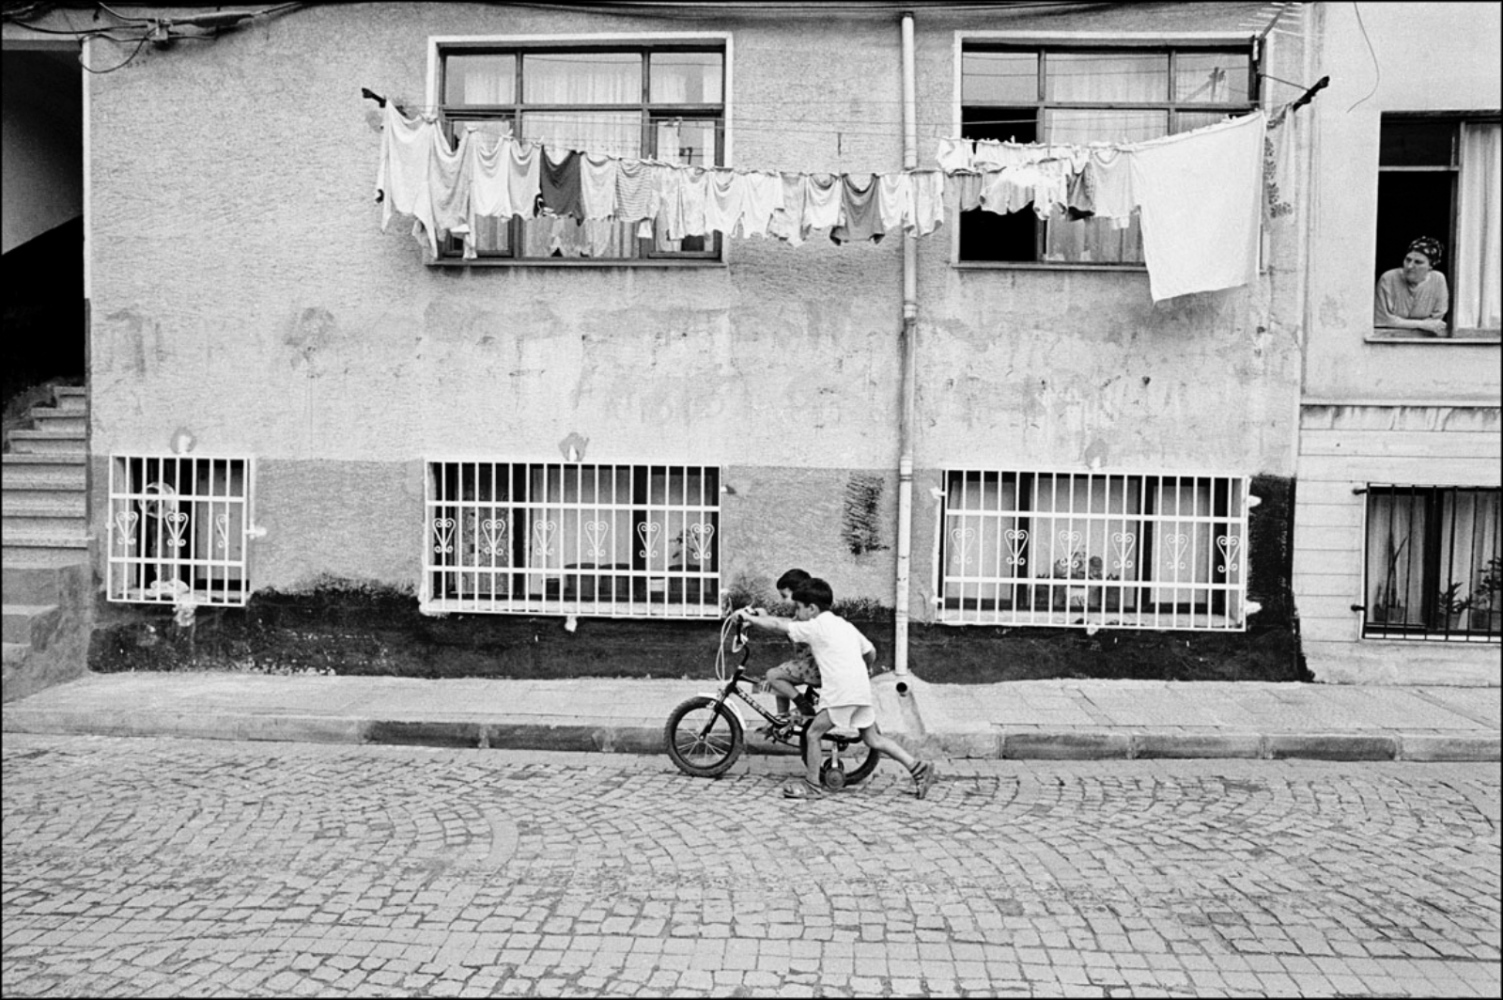 Bicycle and Laundry, Turkey, Summer 1997